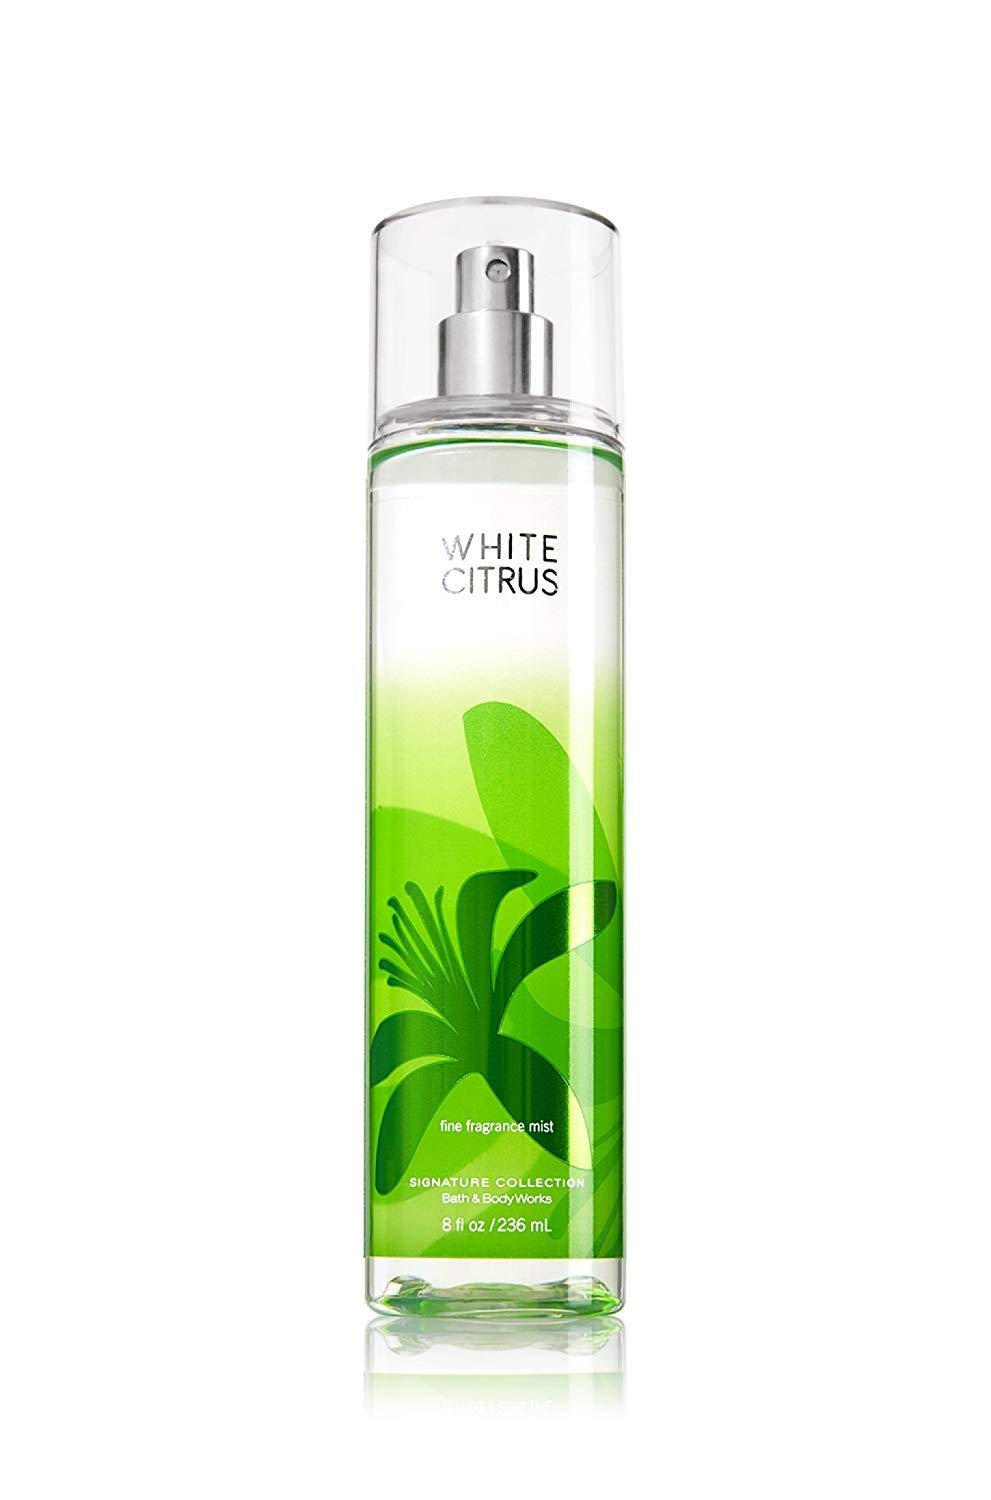 Bath & Body Works White Citrus 8.0 oz Fine Fragrance Mist 667529555970